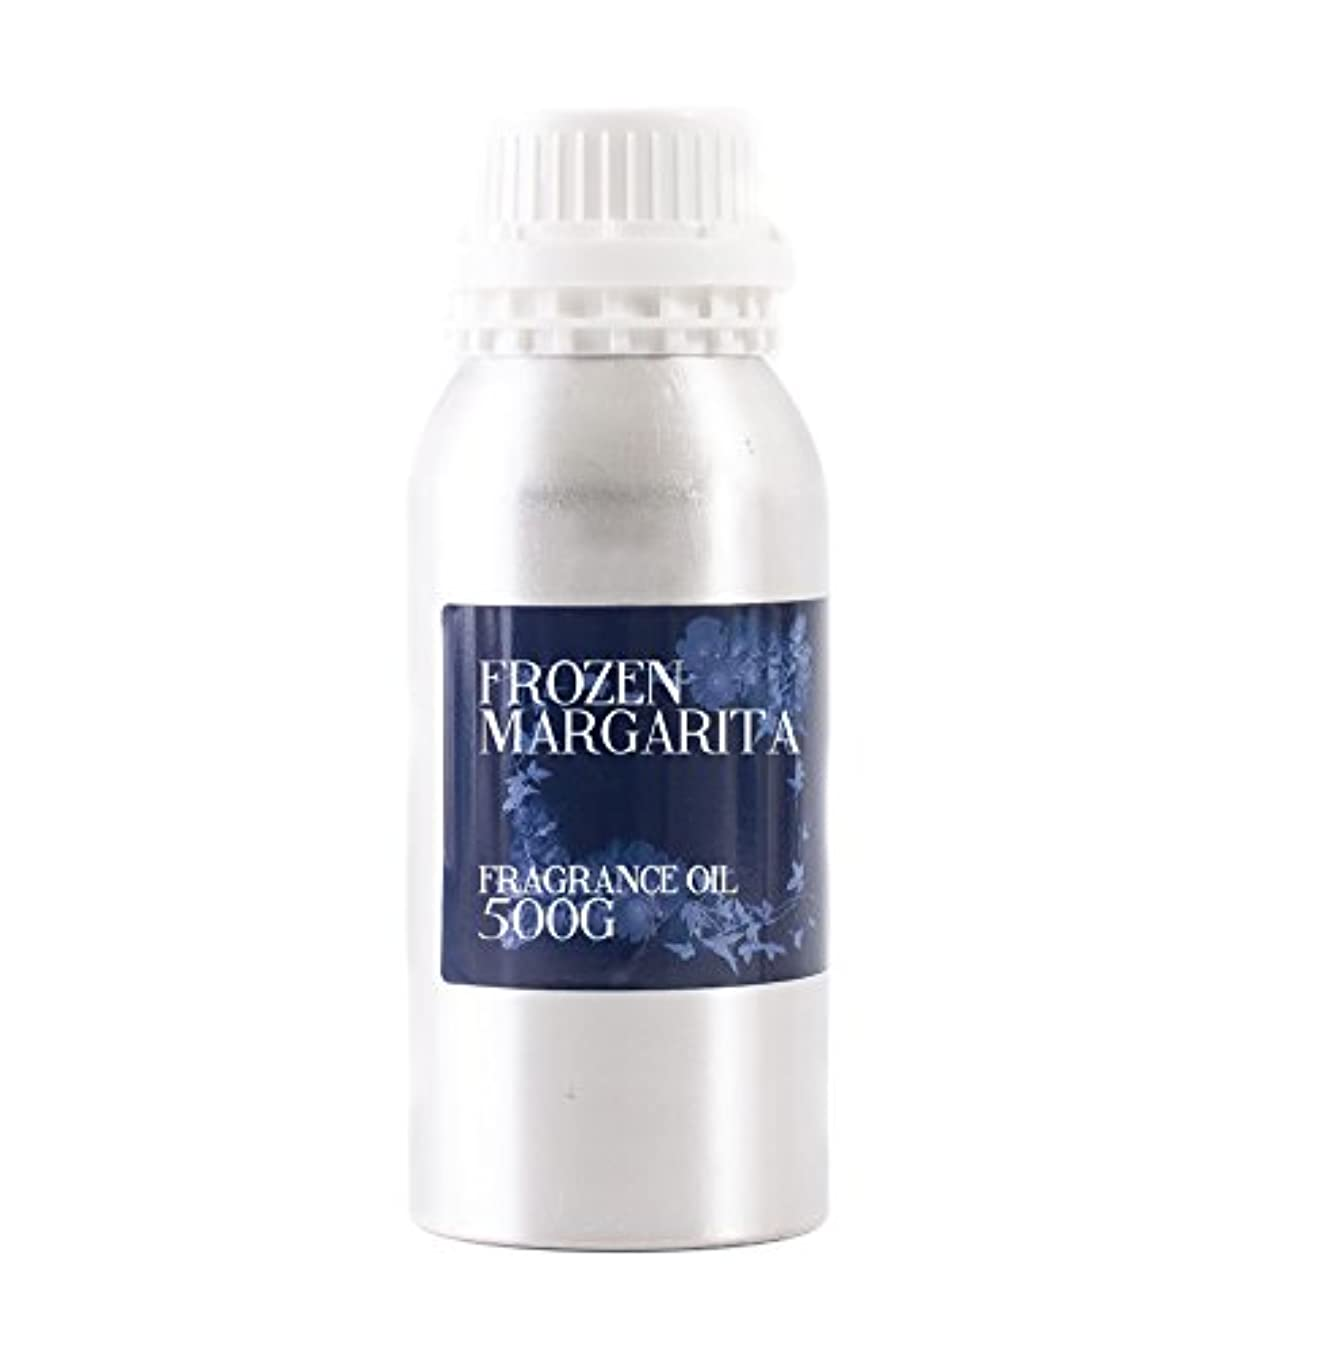 クスクス雪だるまを作る容疑者Mystic Moments | Frozen Margarita Fragrance Oil - 500g